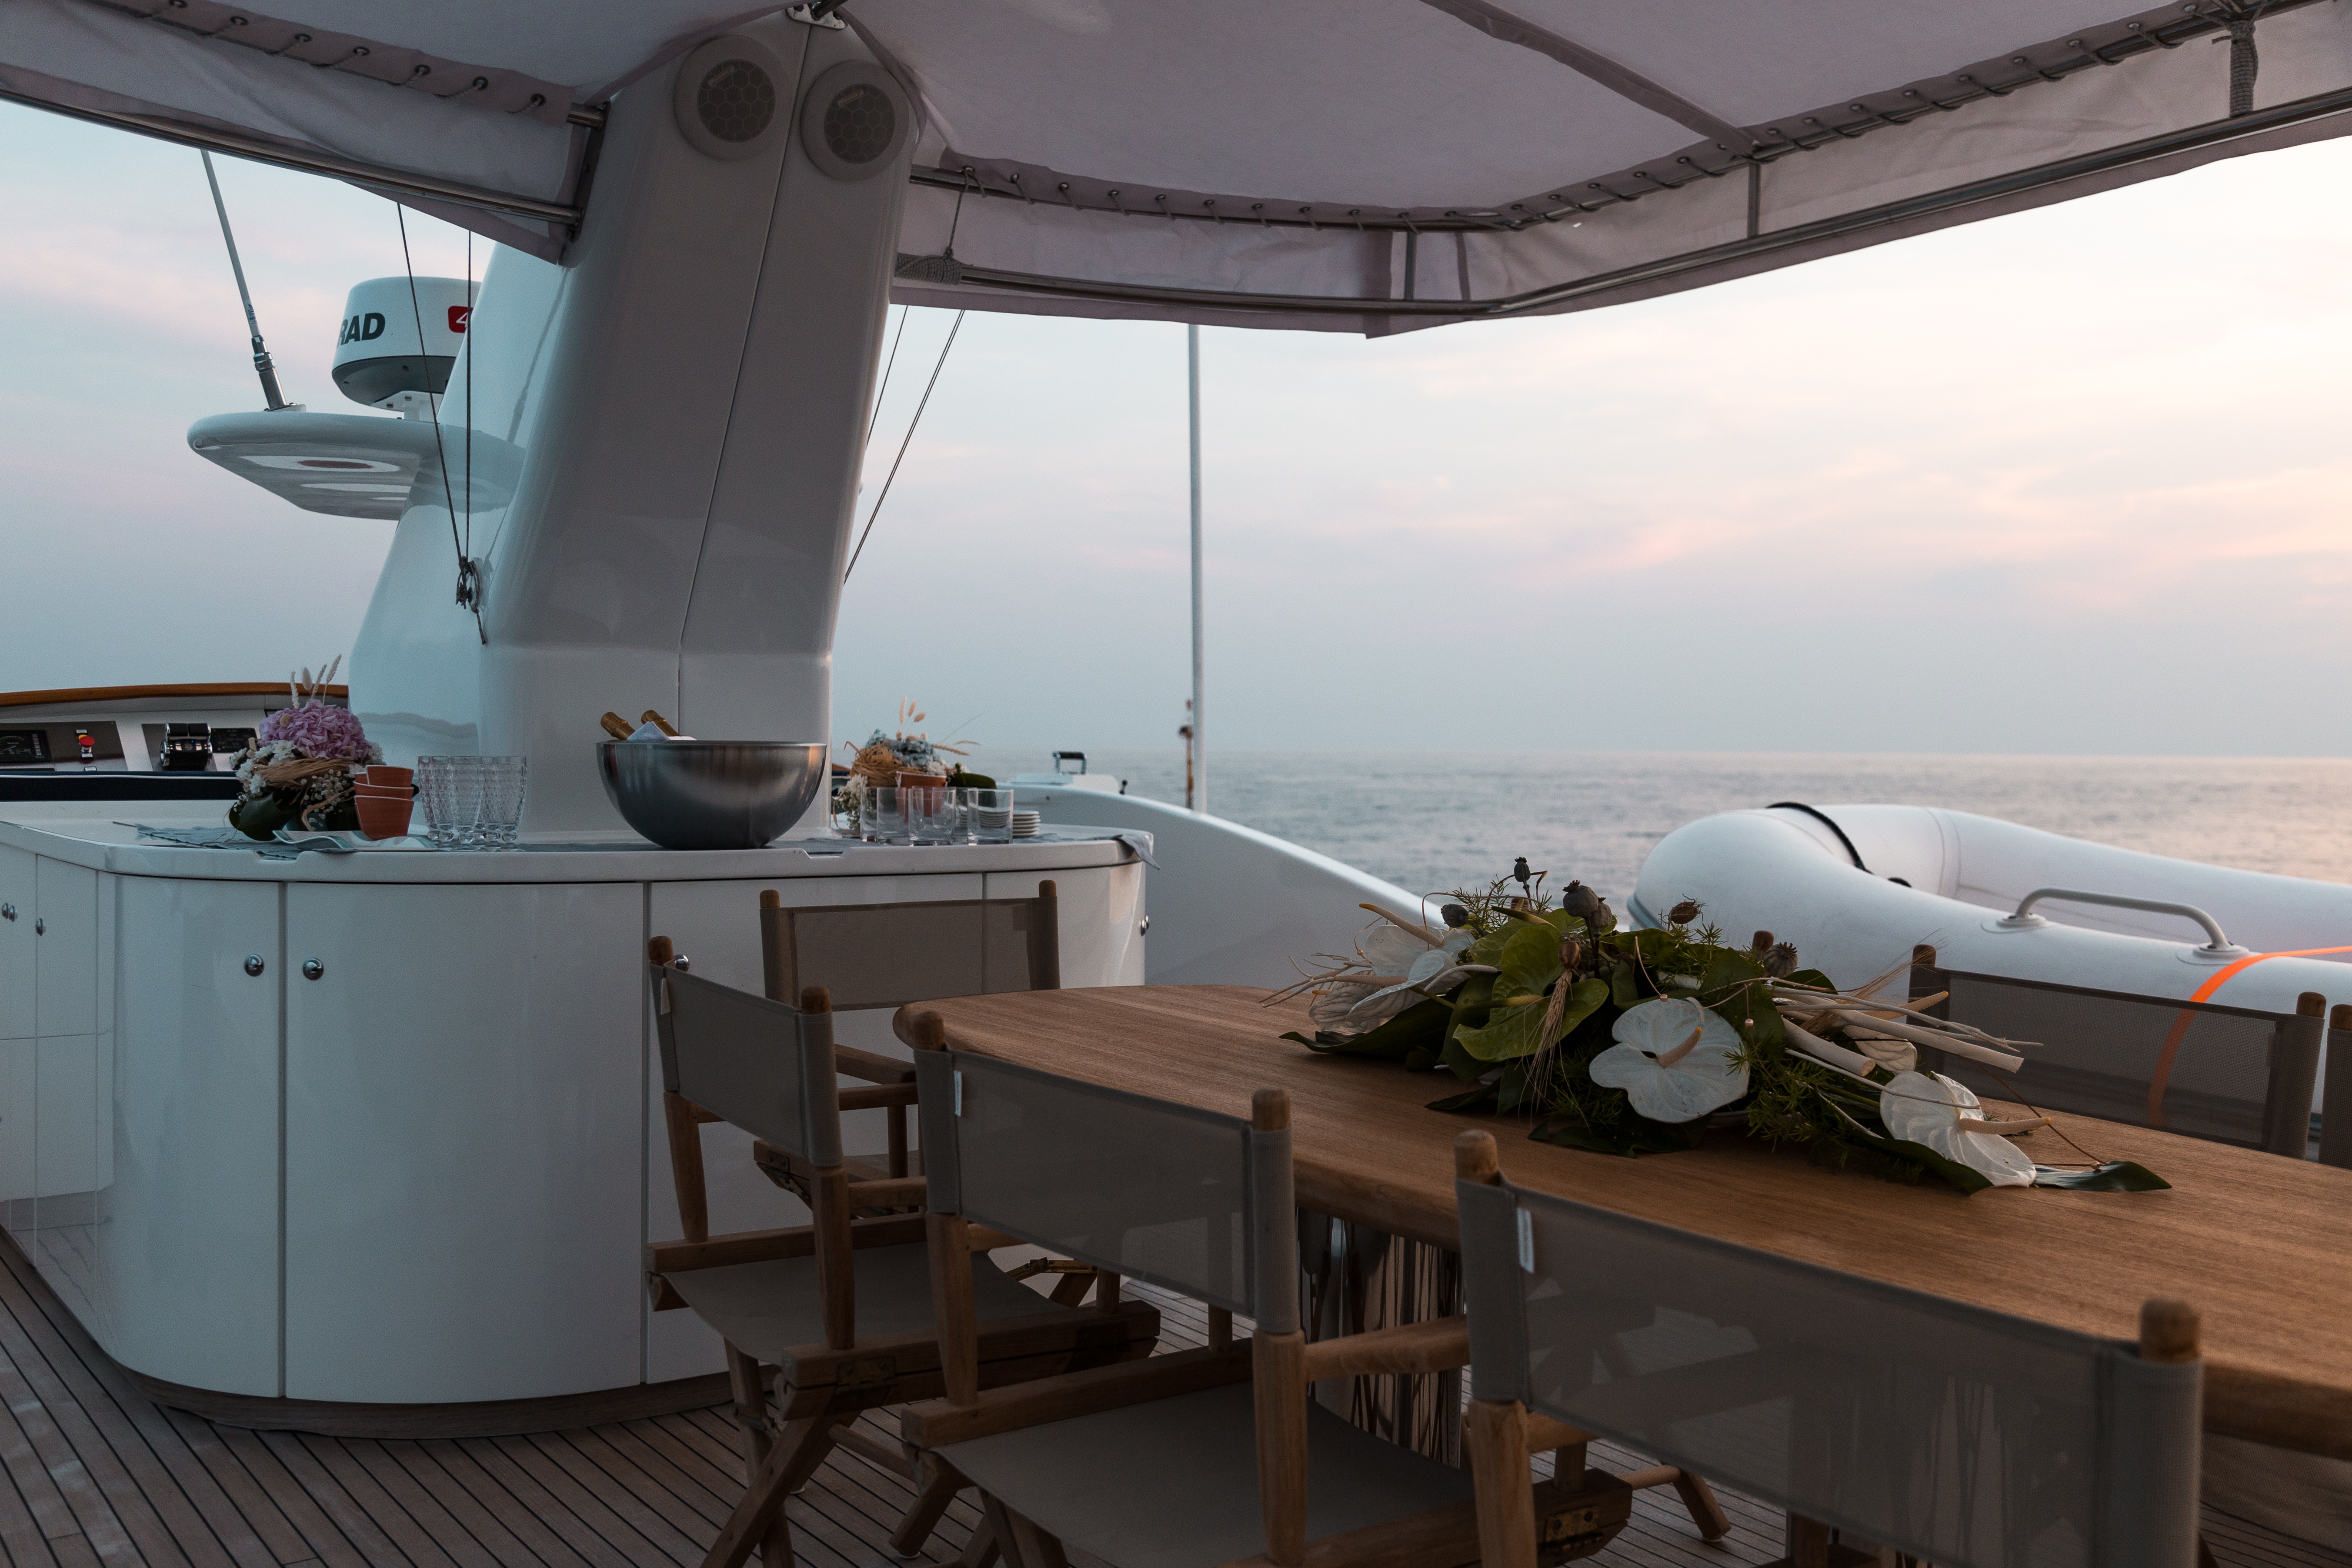 M/Y PAOLUCCI yacht for charter upper deck dining area